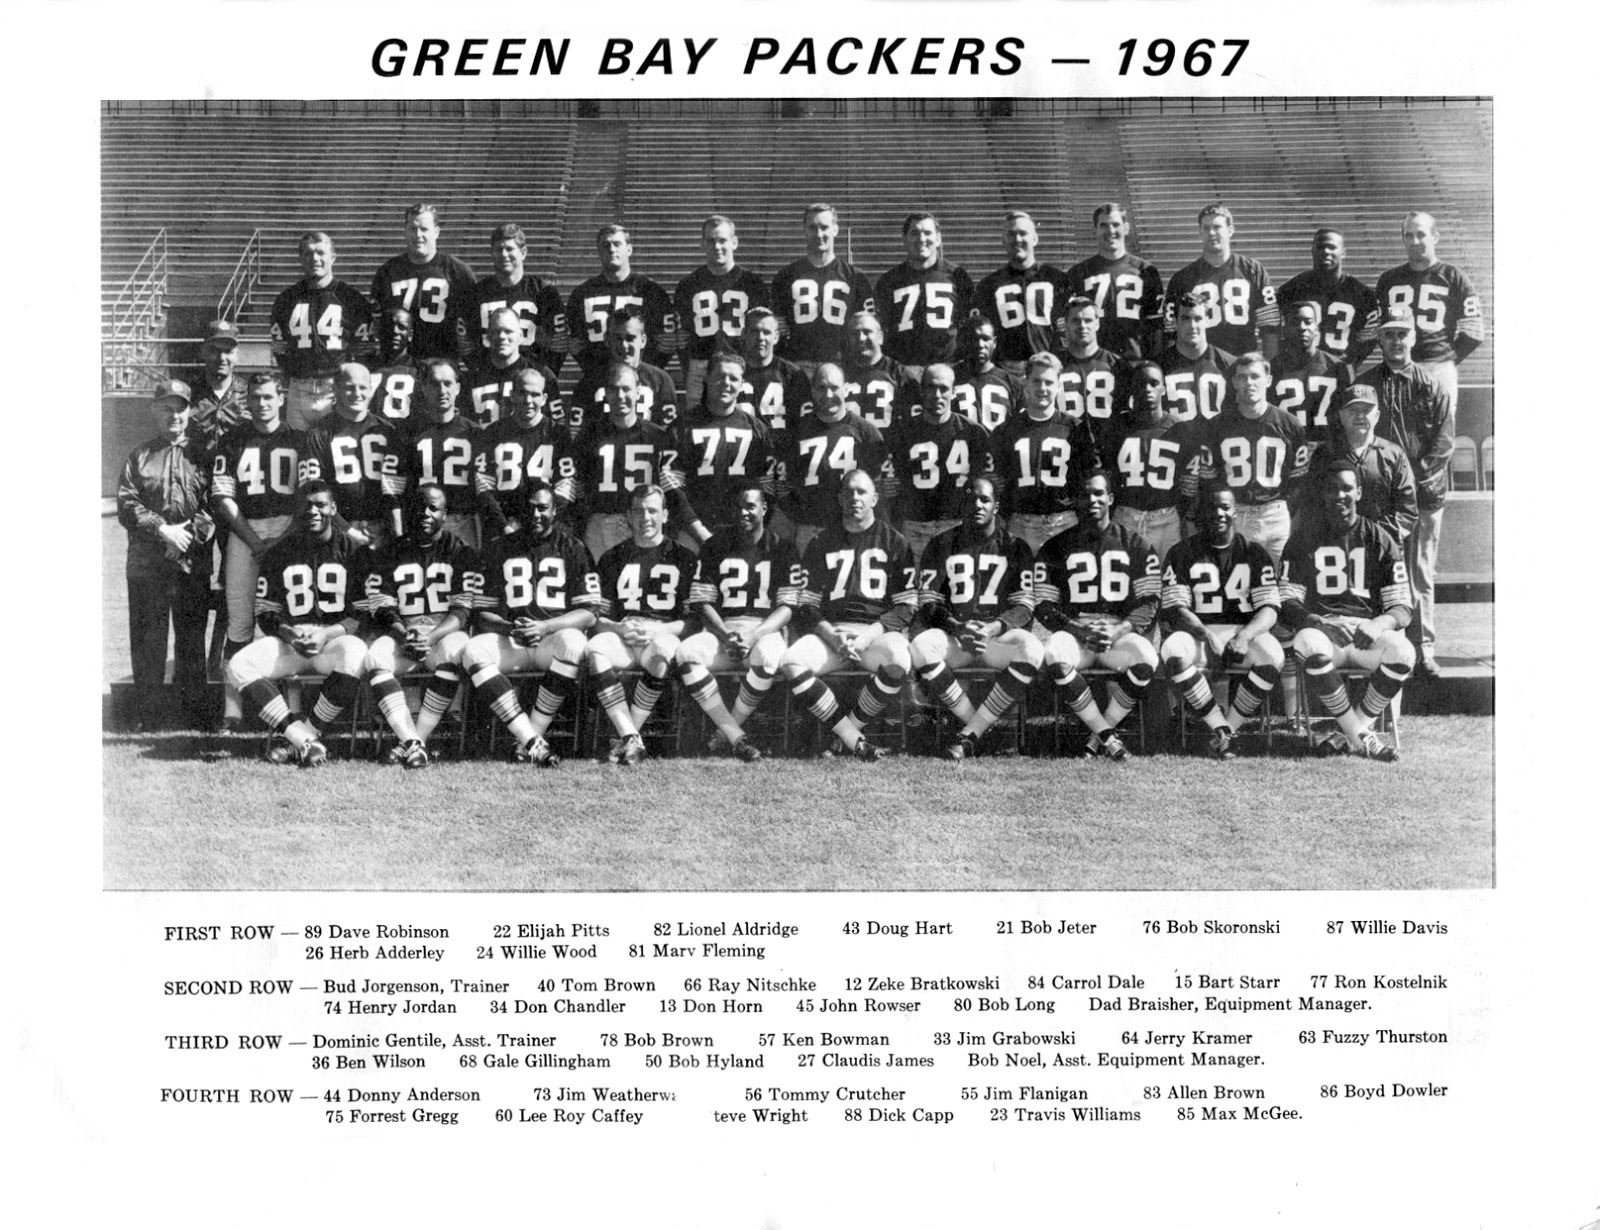 1967 Green Bay Packers season